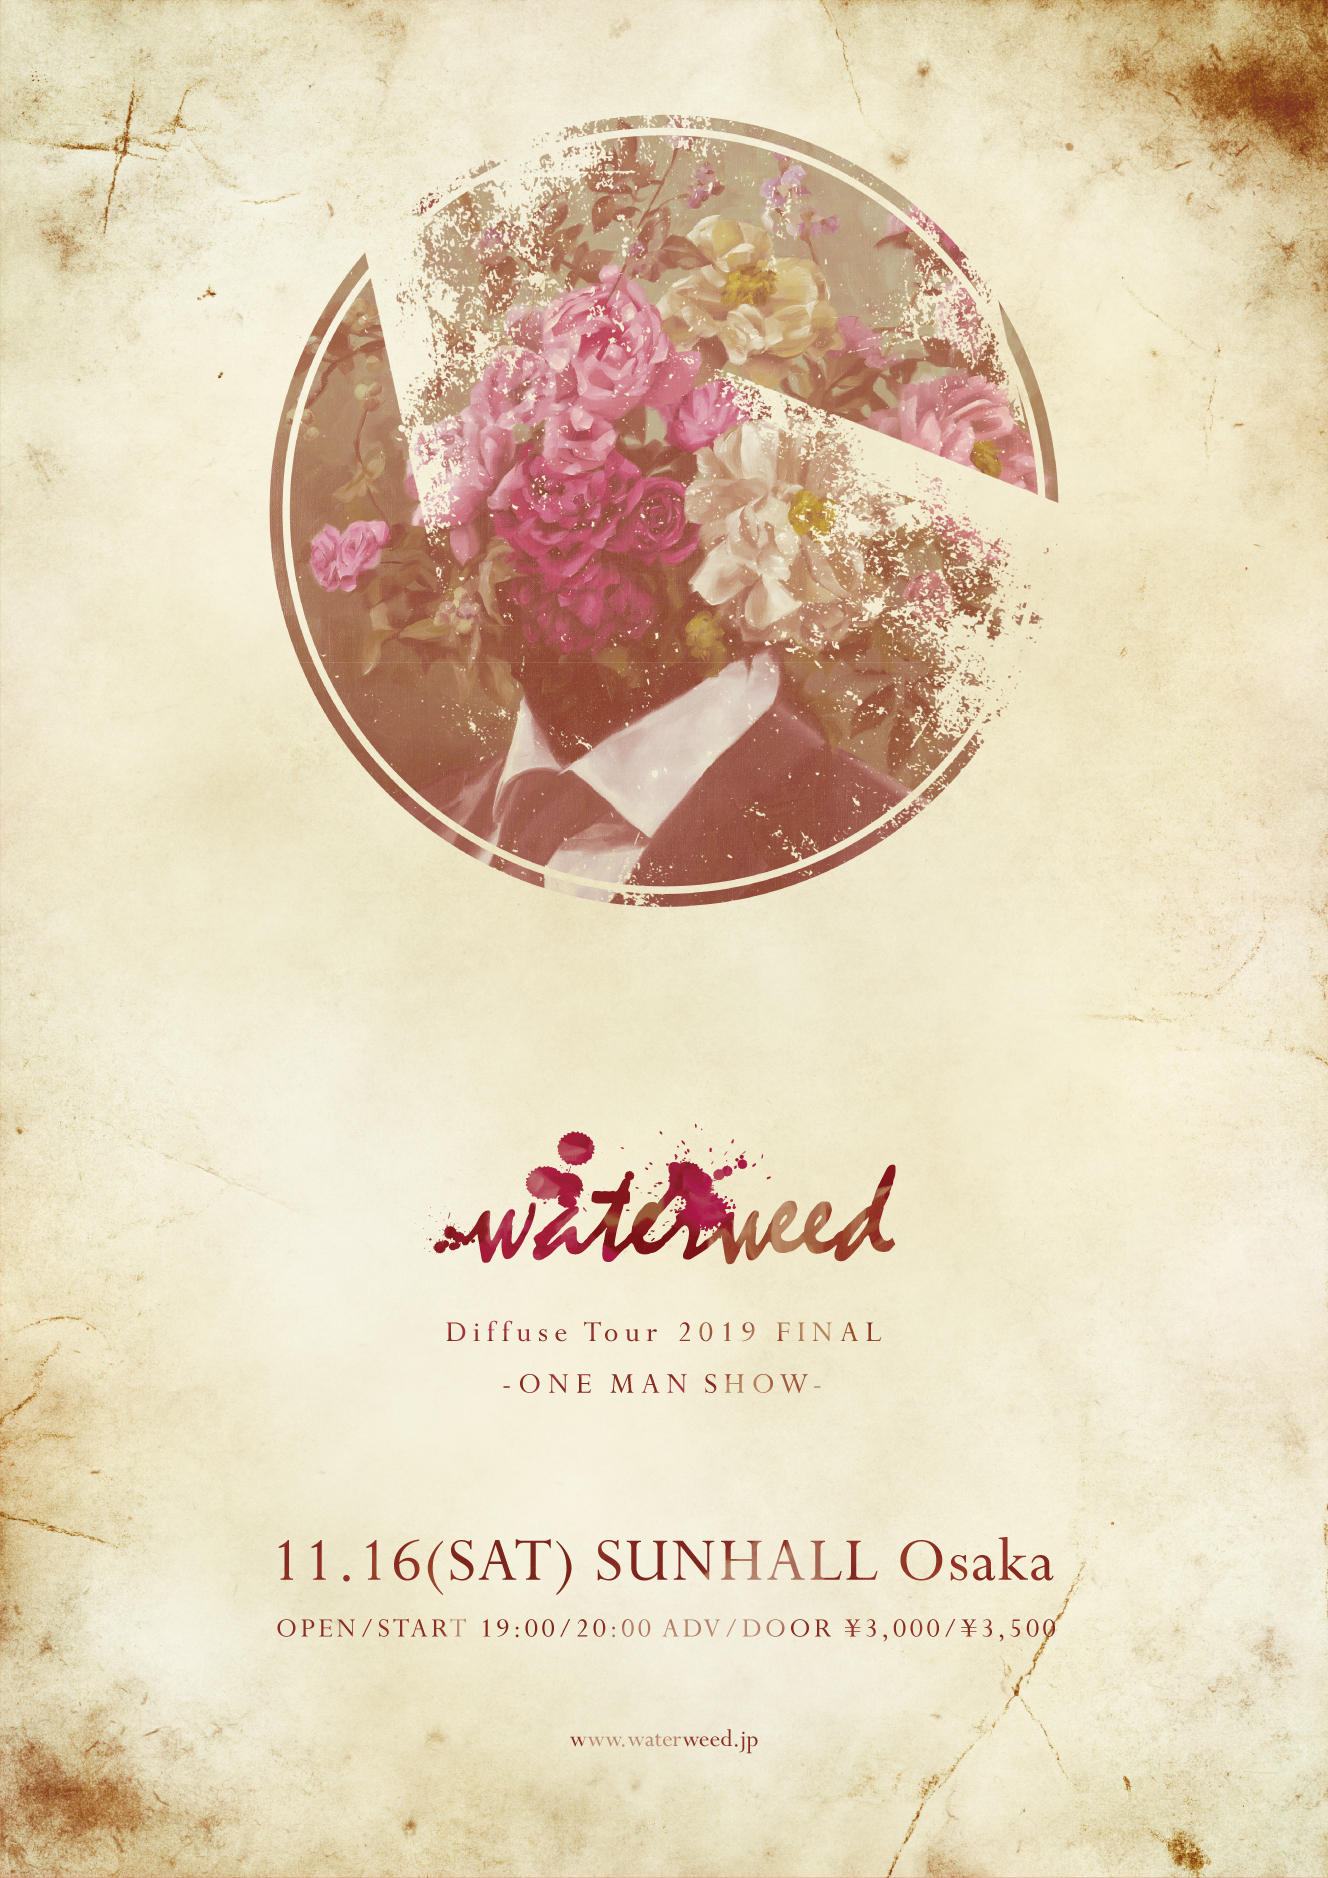 Diffuse Tour 2019 FINAL waterweed -ONE MAN SHOW-